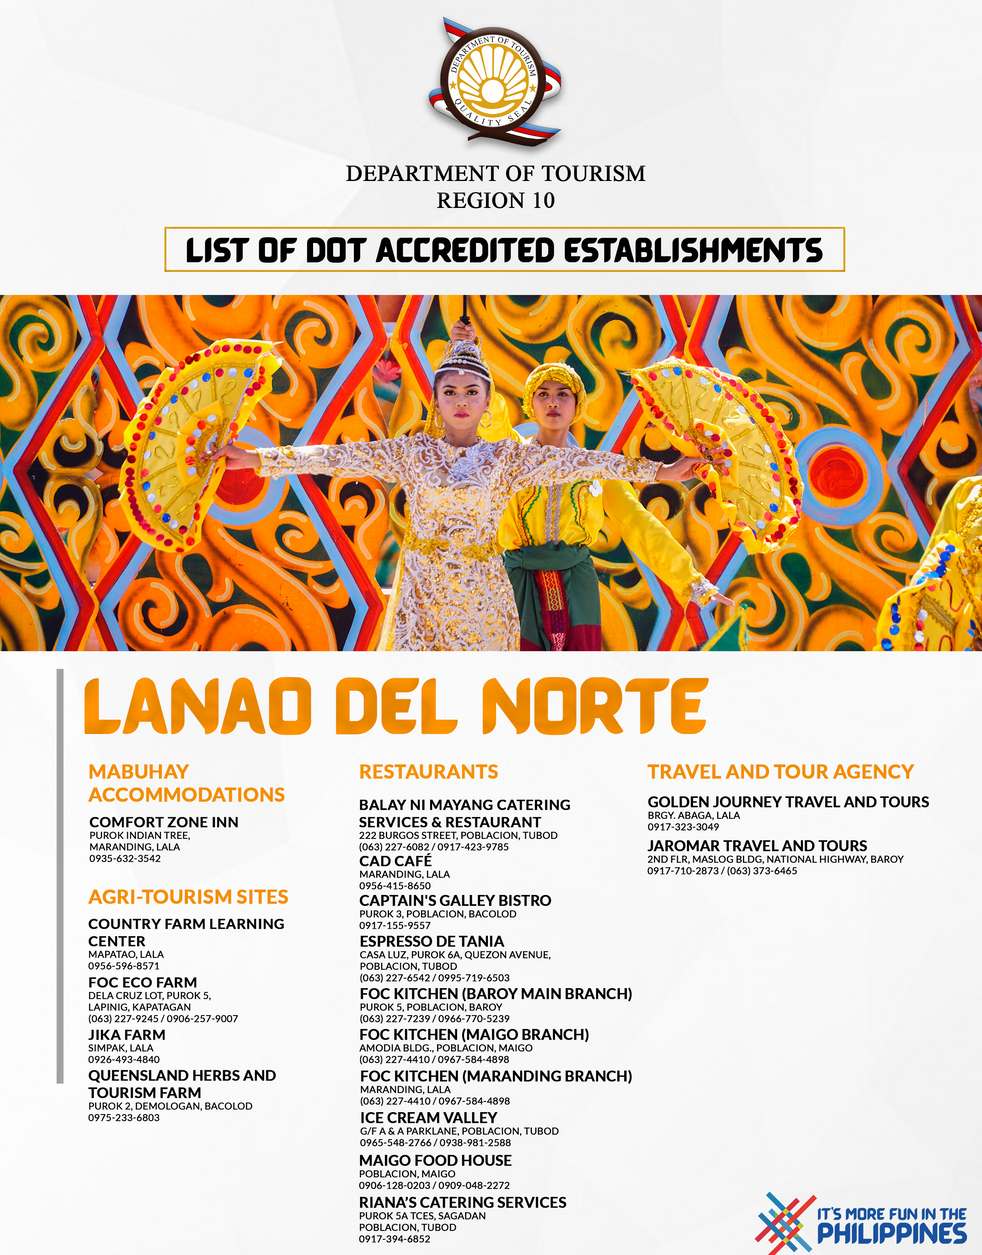 Lanao del Norte Accred Poster.png